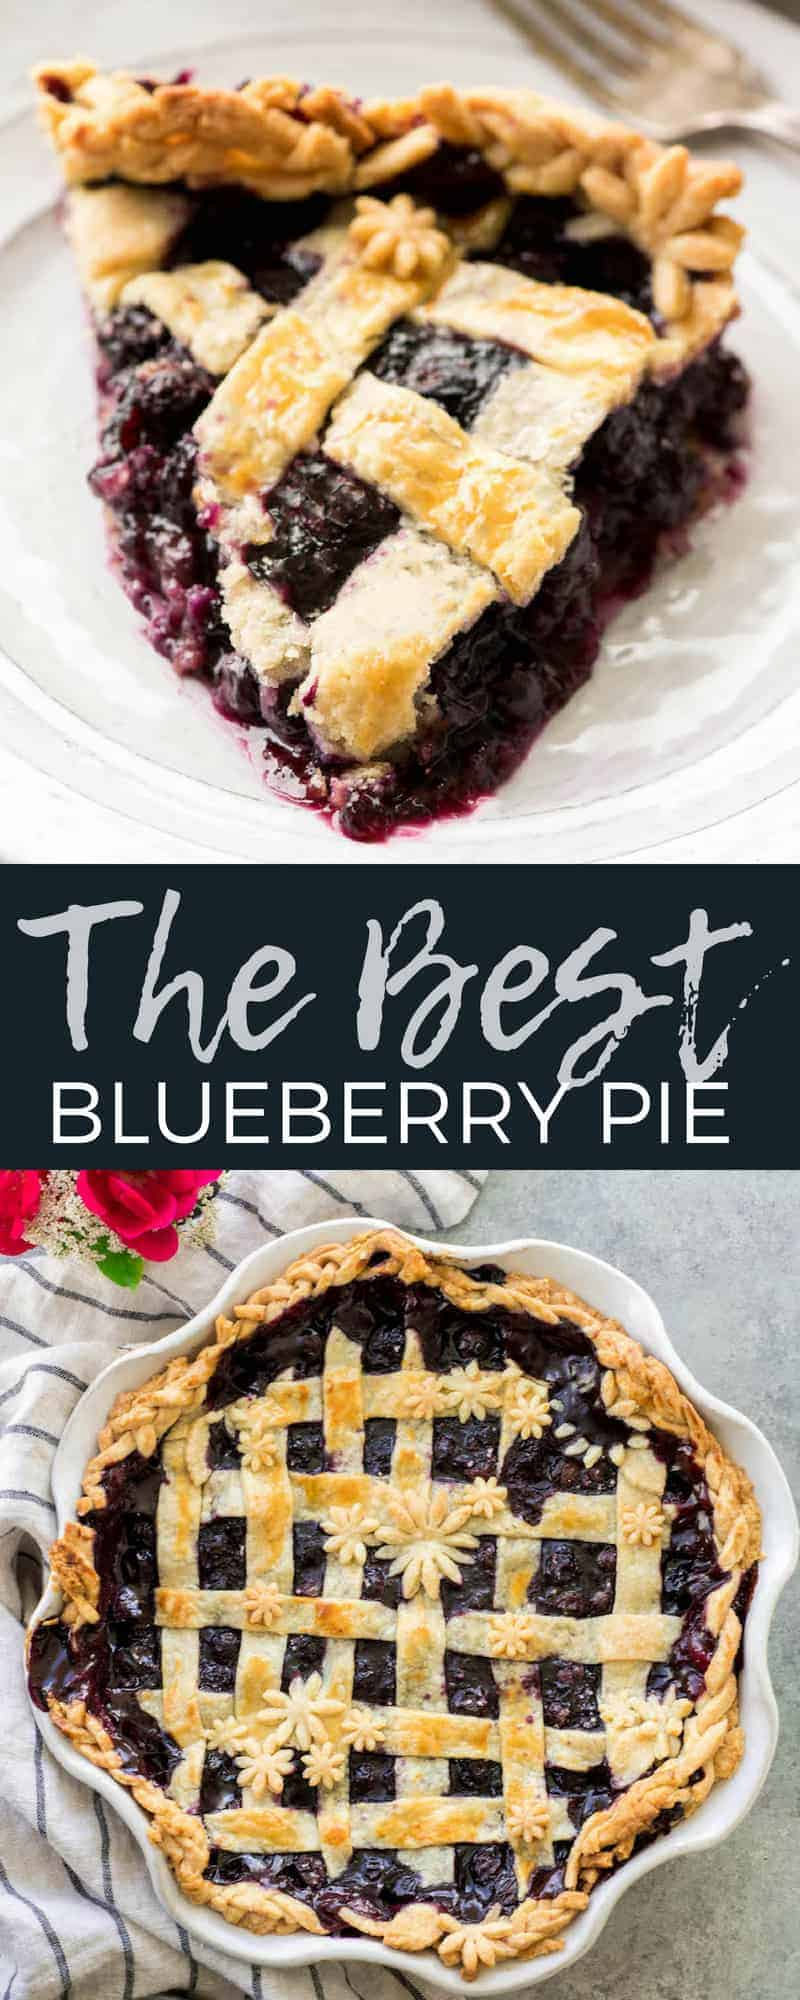 Literally the best, easy & simple homemade Blueberry Pie Recipe from scratch that you will ever try! It's made with only a handful of ingredients and includes step-by-step instructions and photos for making your own butter pie crust! You need to make this amazing dessert this summer! #pie #blueberries #baking #recipe #fromscratch #homemade #blueberrypie